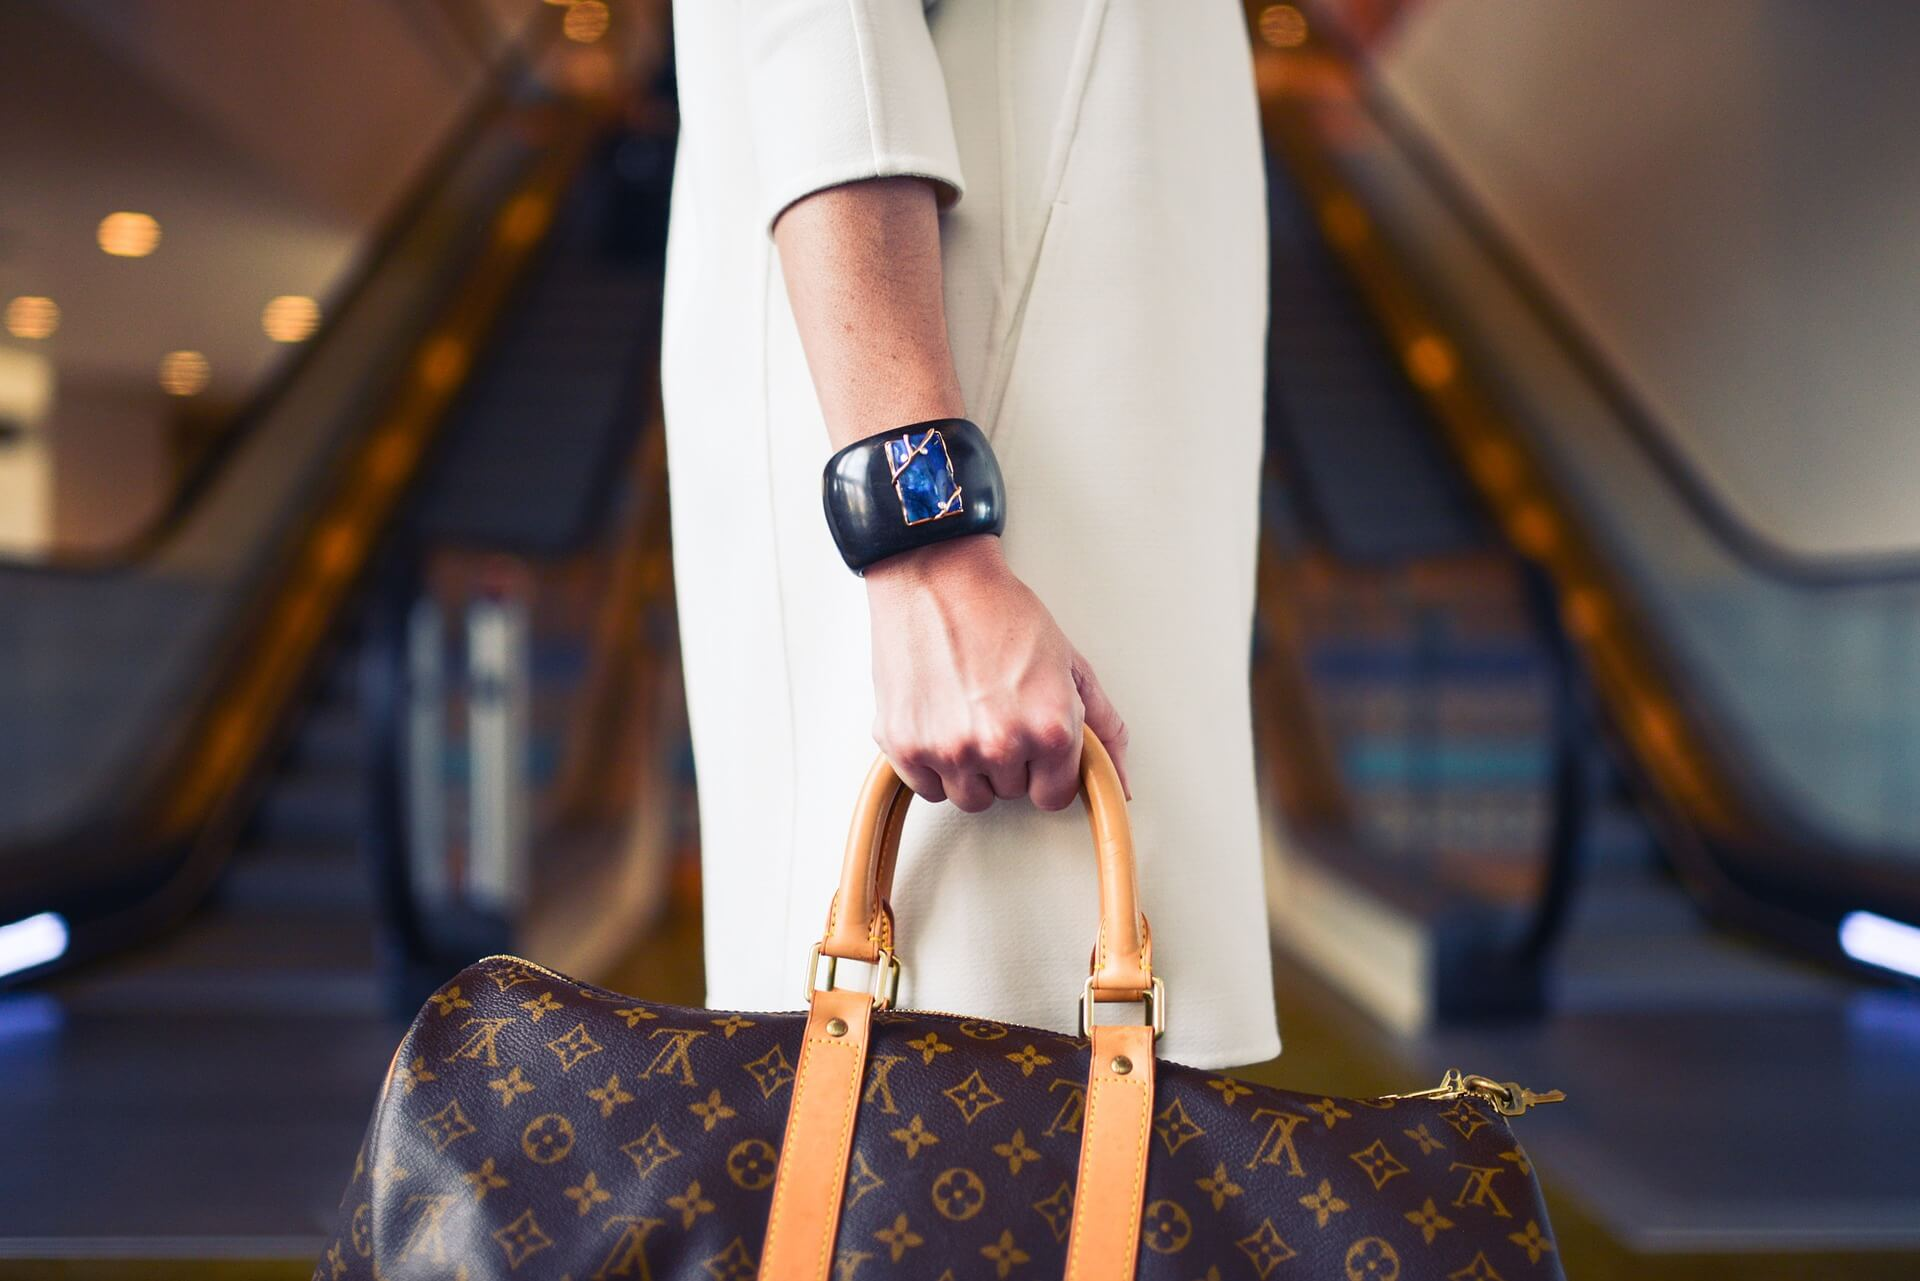 LVMH, company behind Louis Vuitton and Christian Dior, teams up with ConsenSys